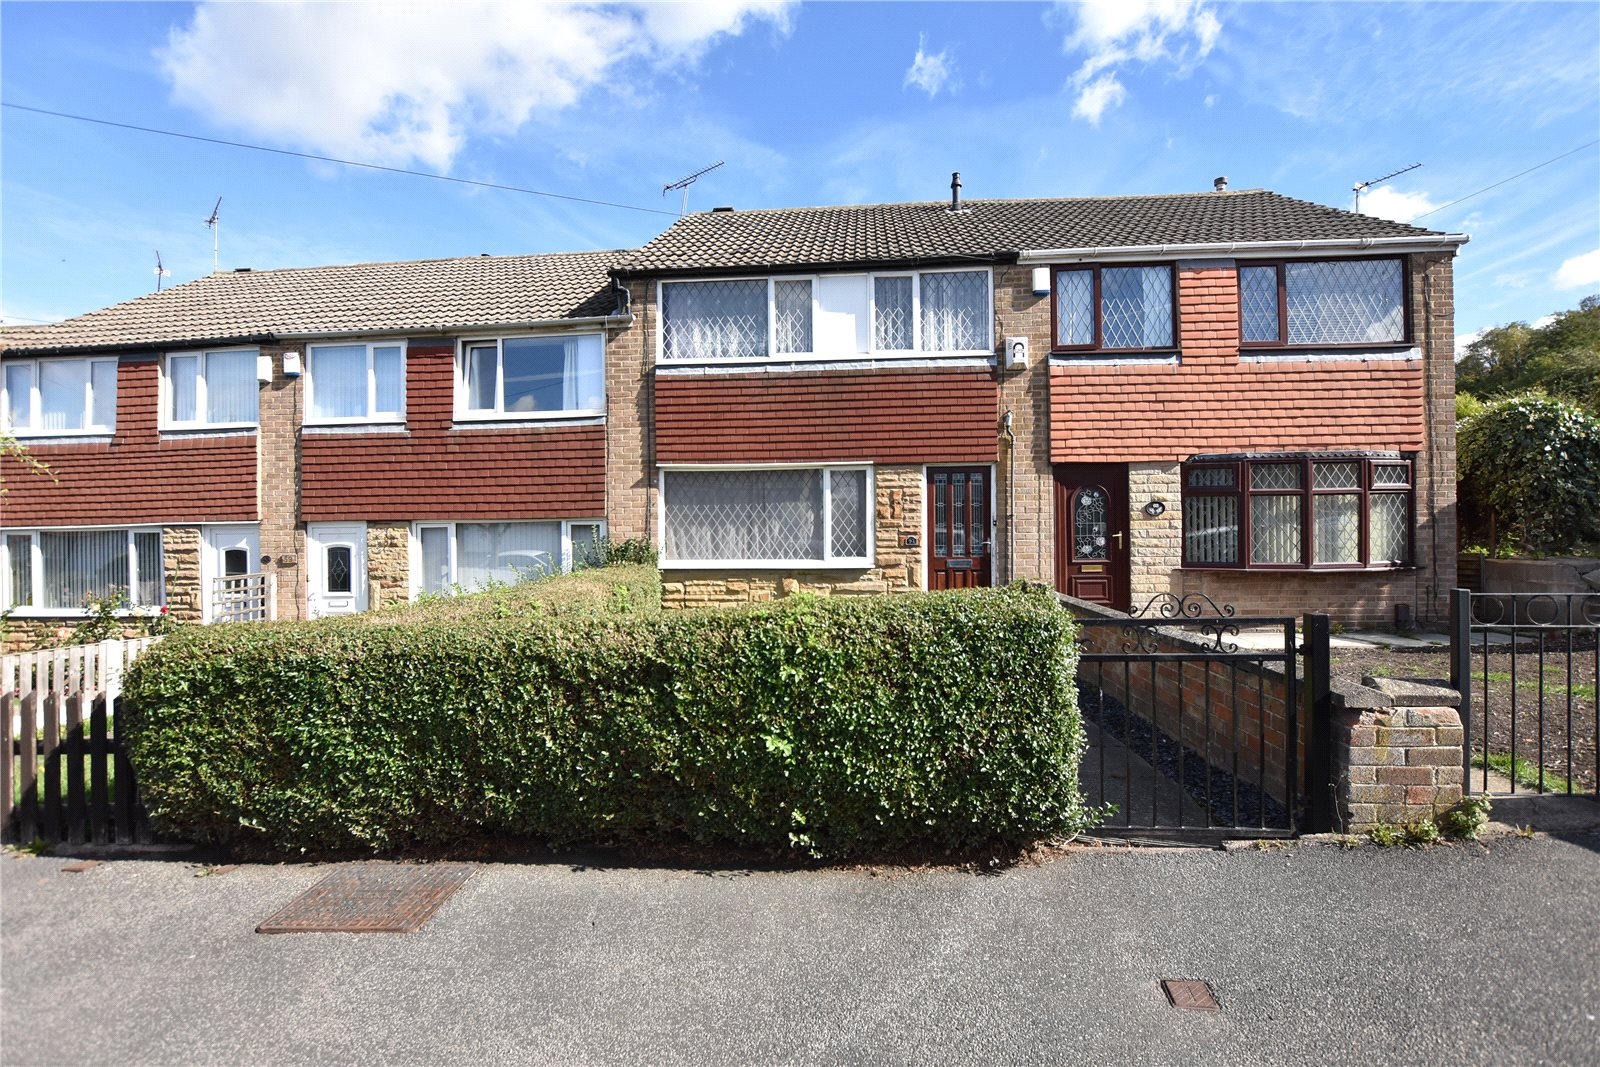 property for sale in Beeston, exterior of terraced home